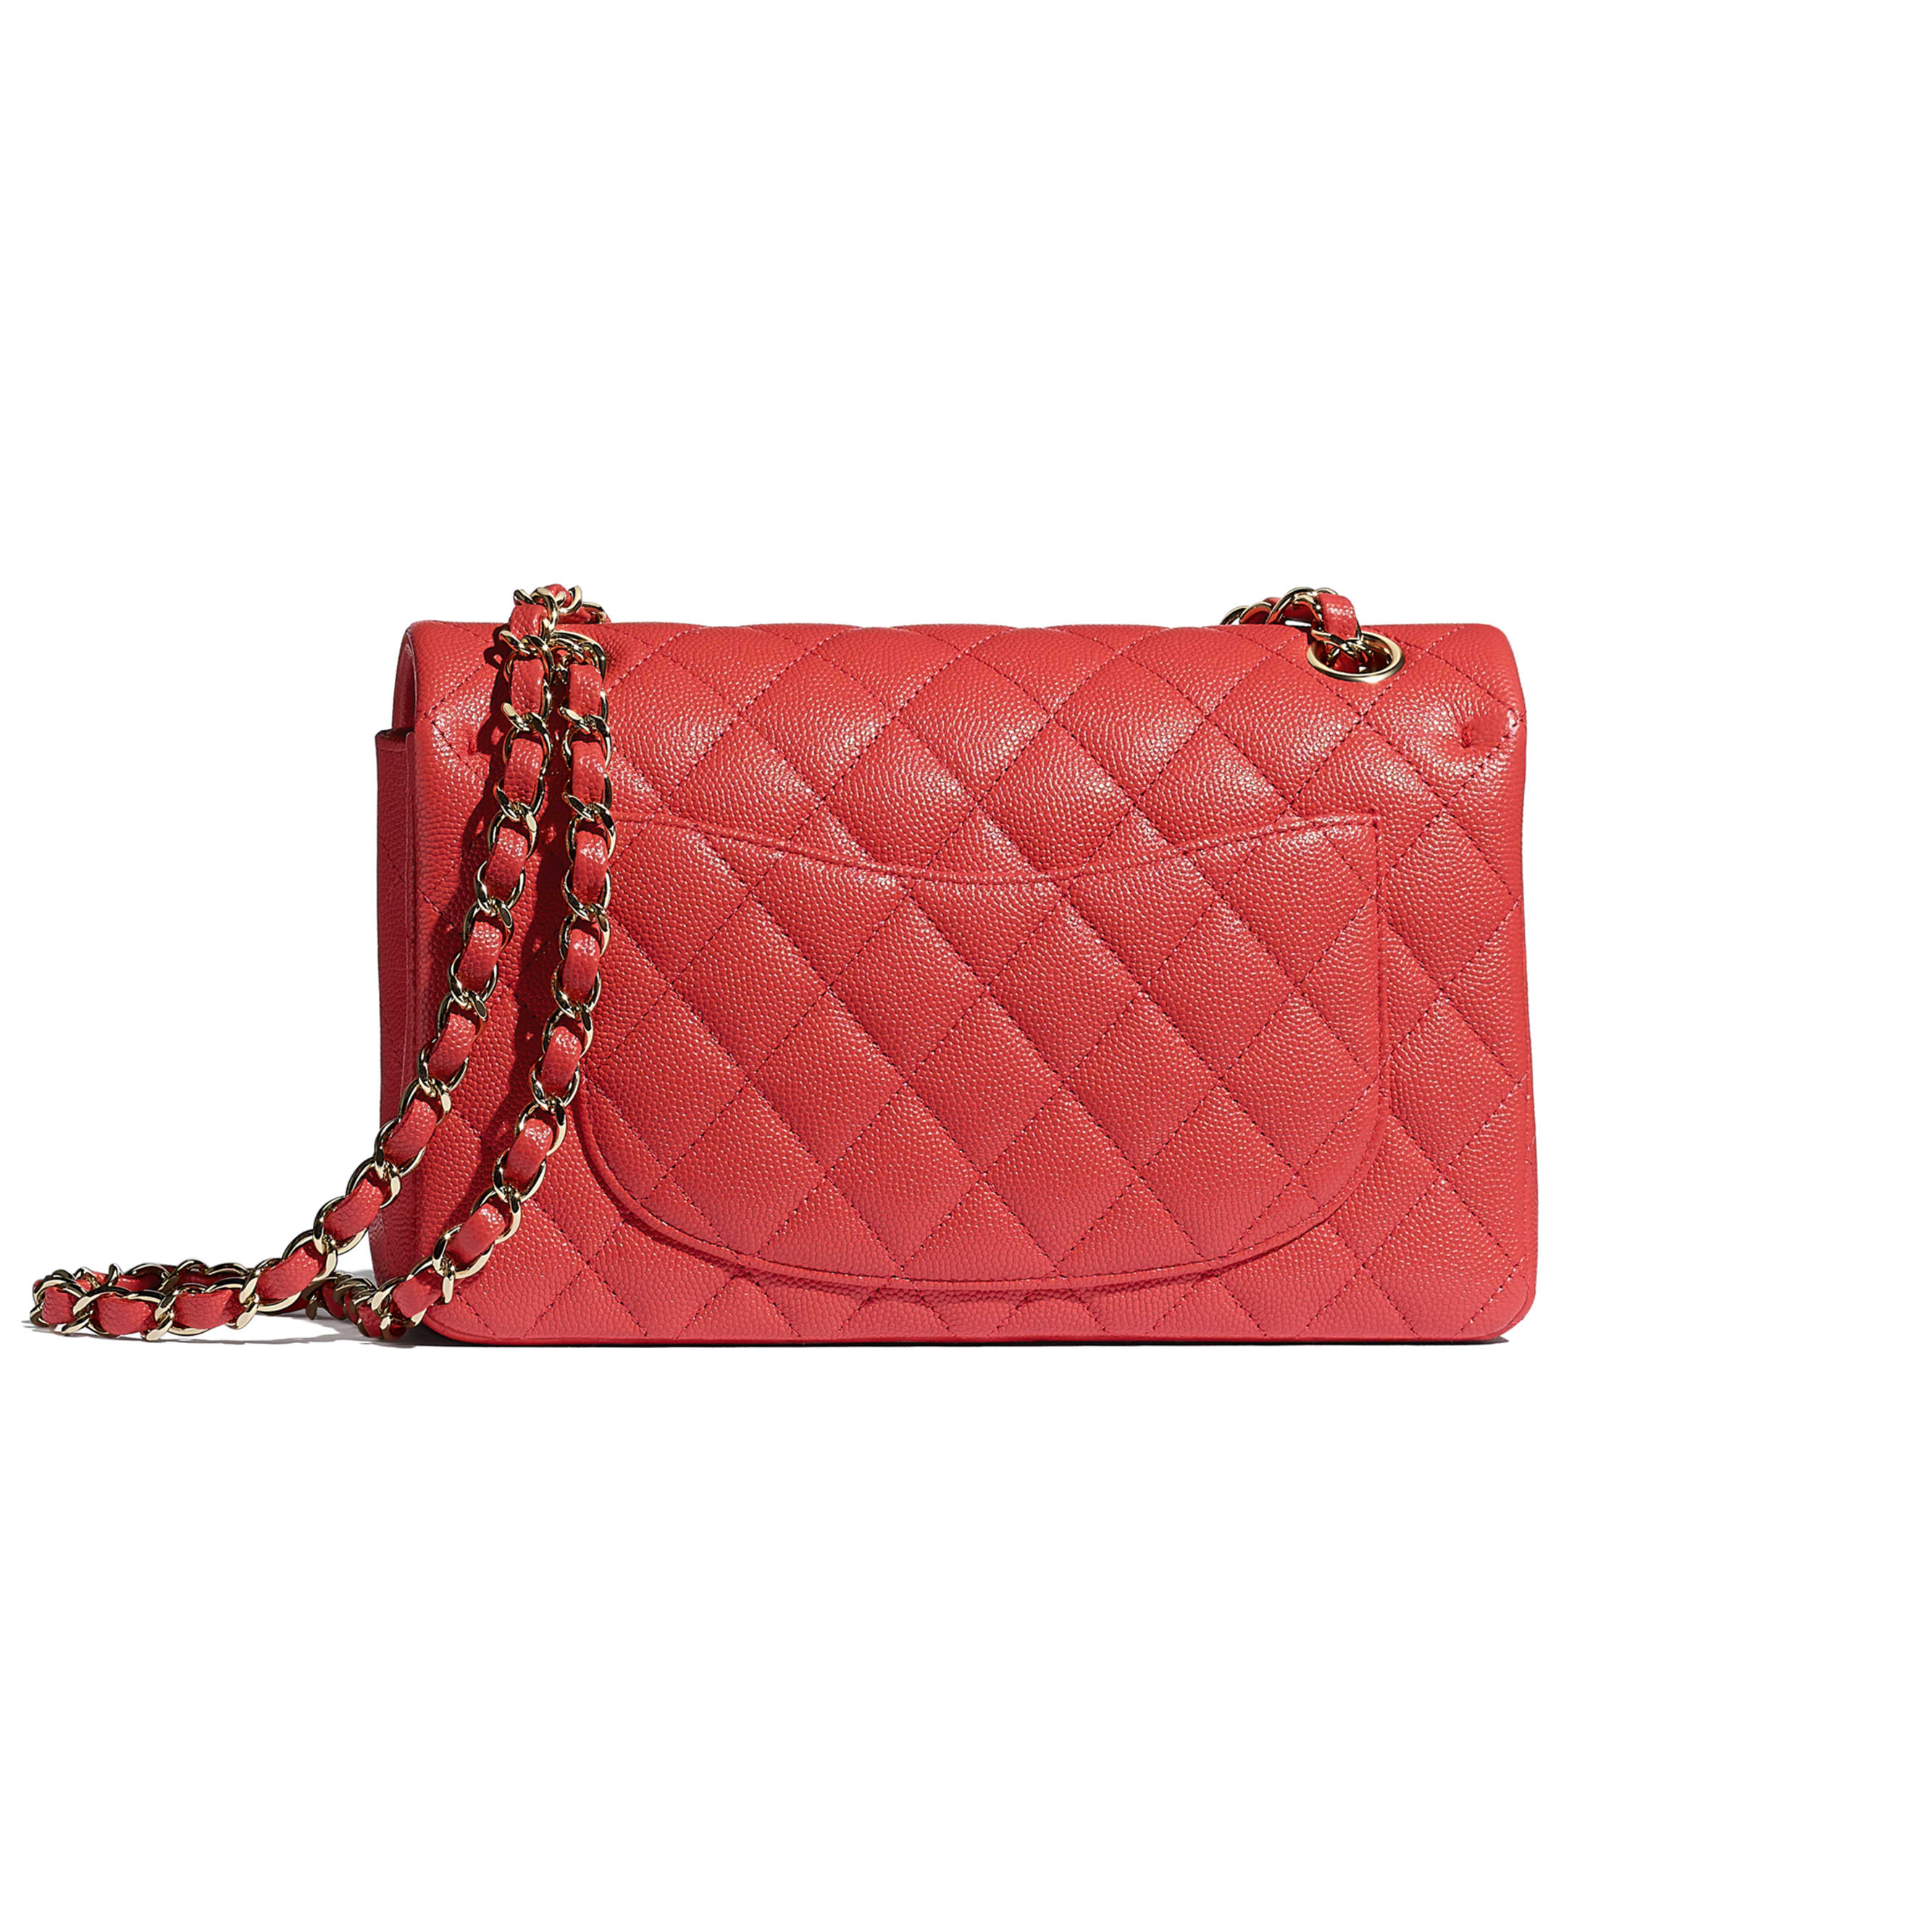 Small Classic Handbag - Red - Grained Calfskin & Gold-Tone Metal - CHANEL - Alternative view - see standard sized version